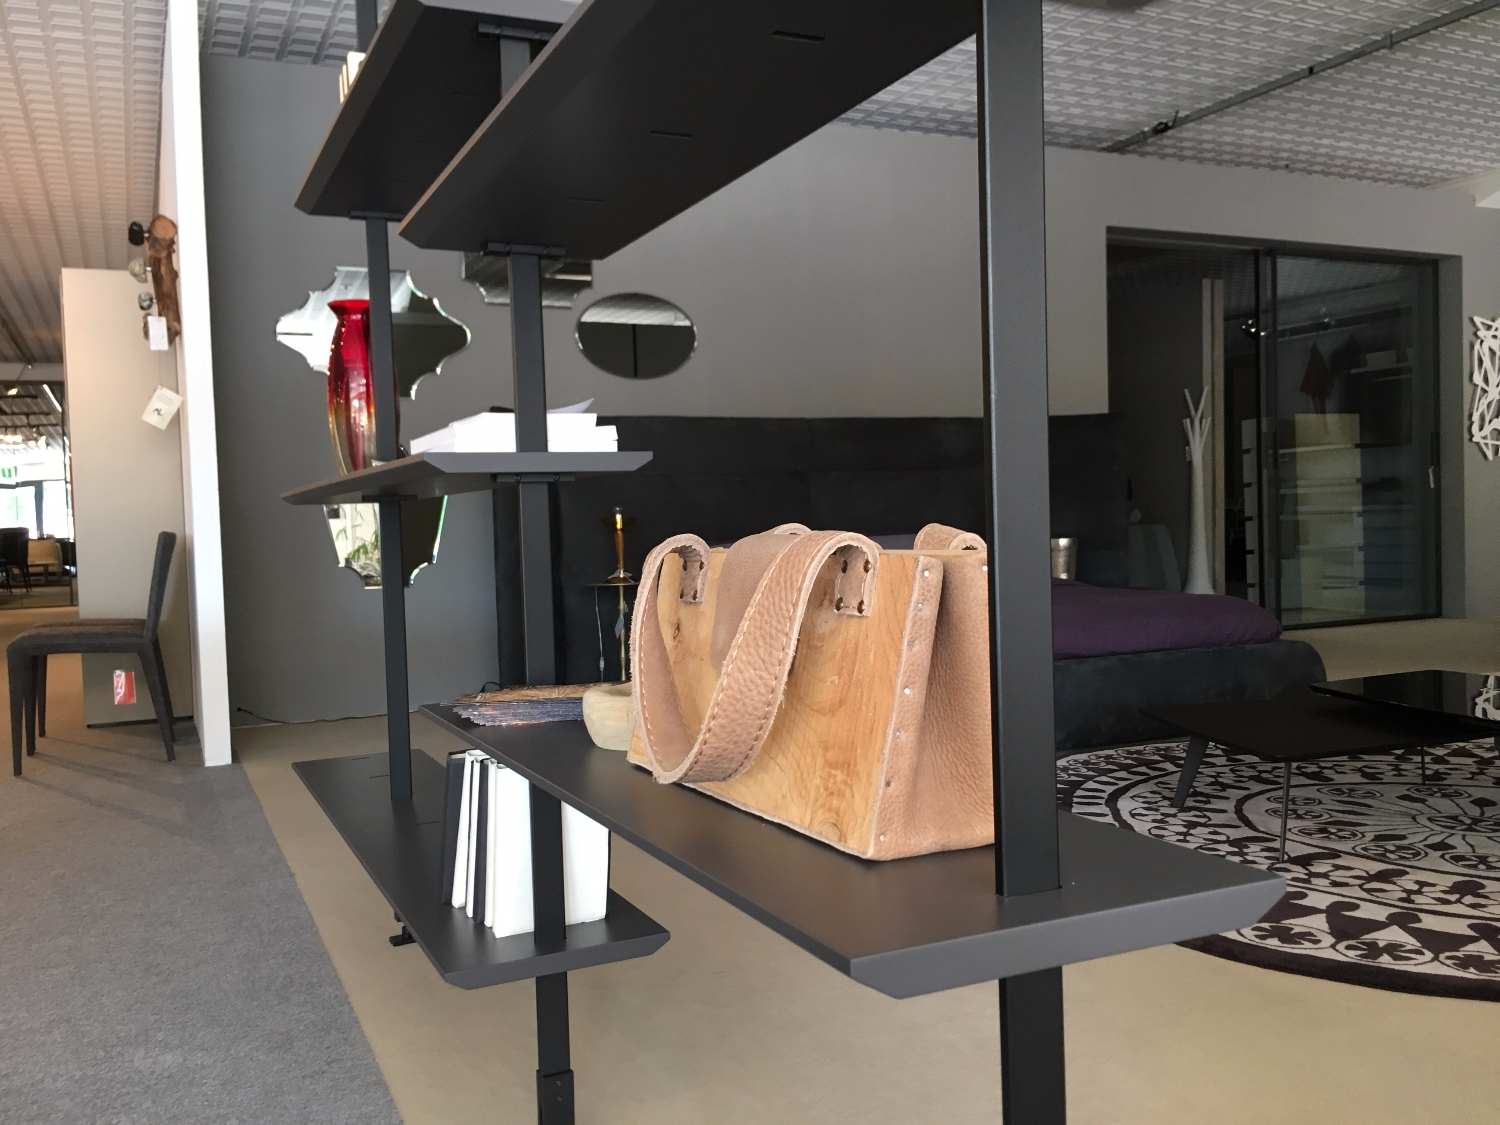 Airport Cattelan Italia - outlet - Prompte Lieferung